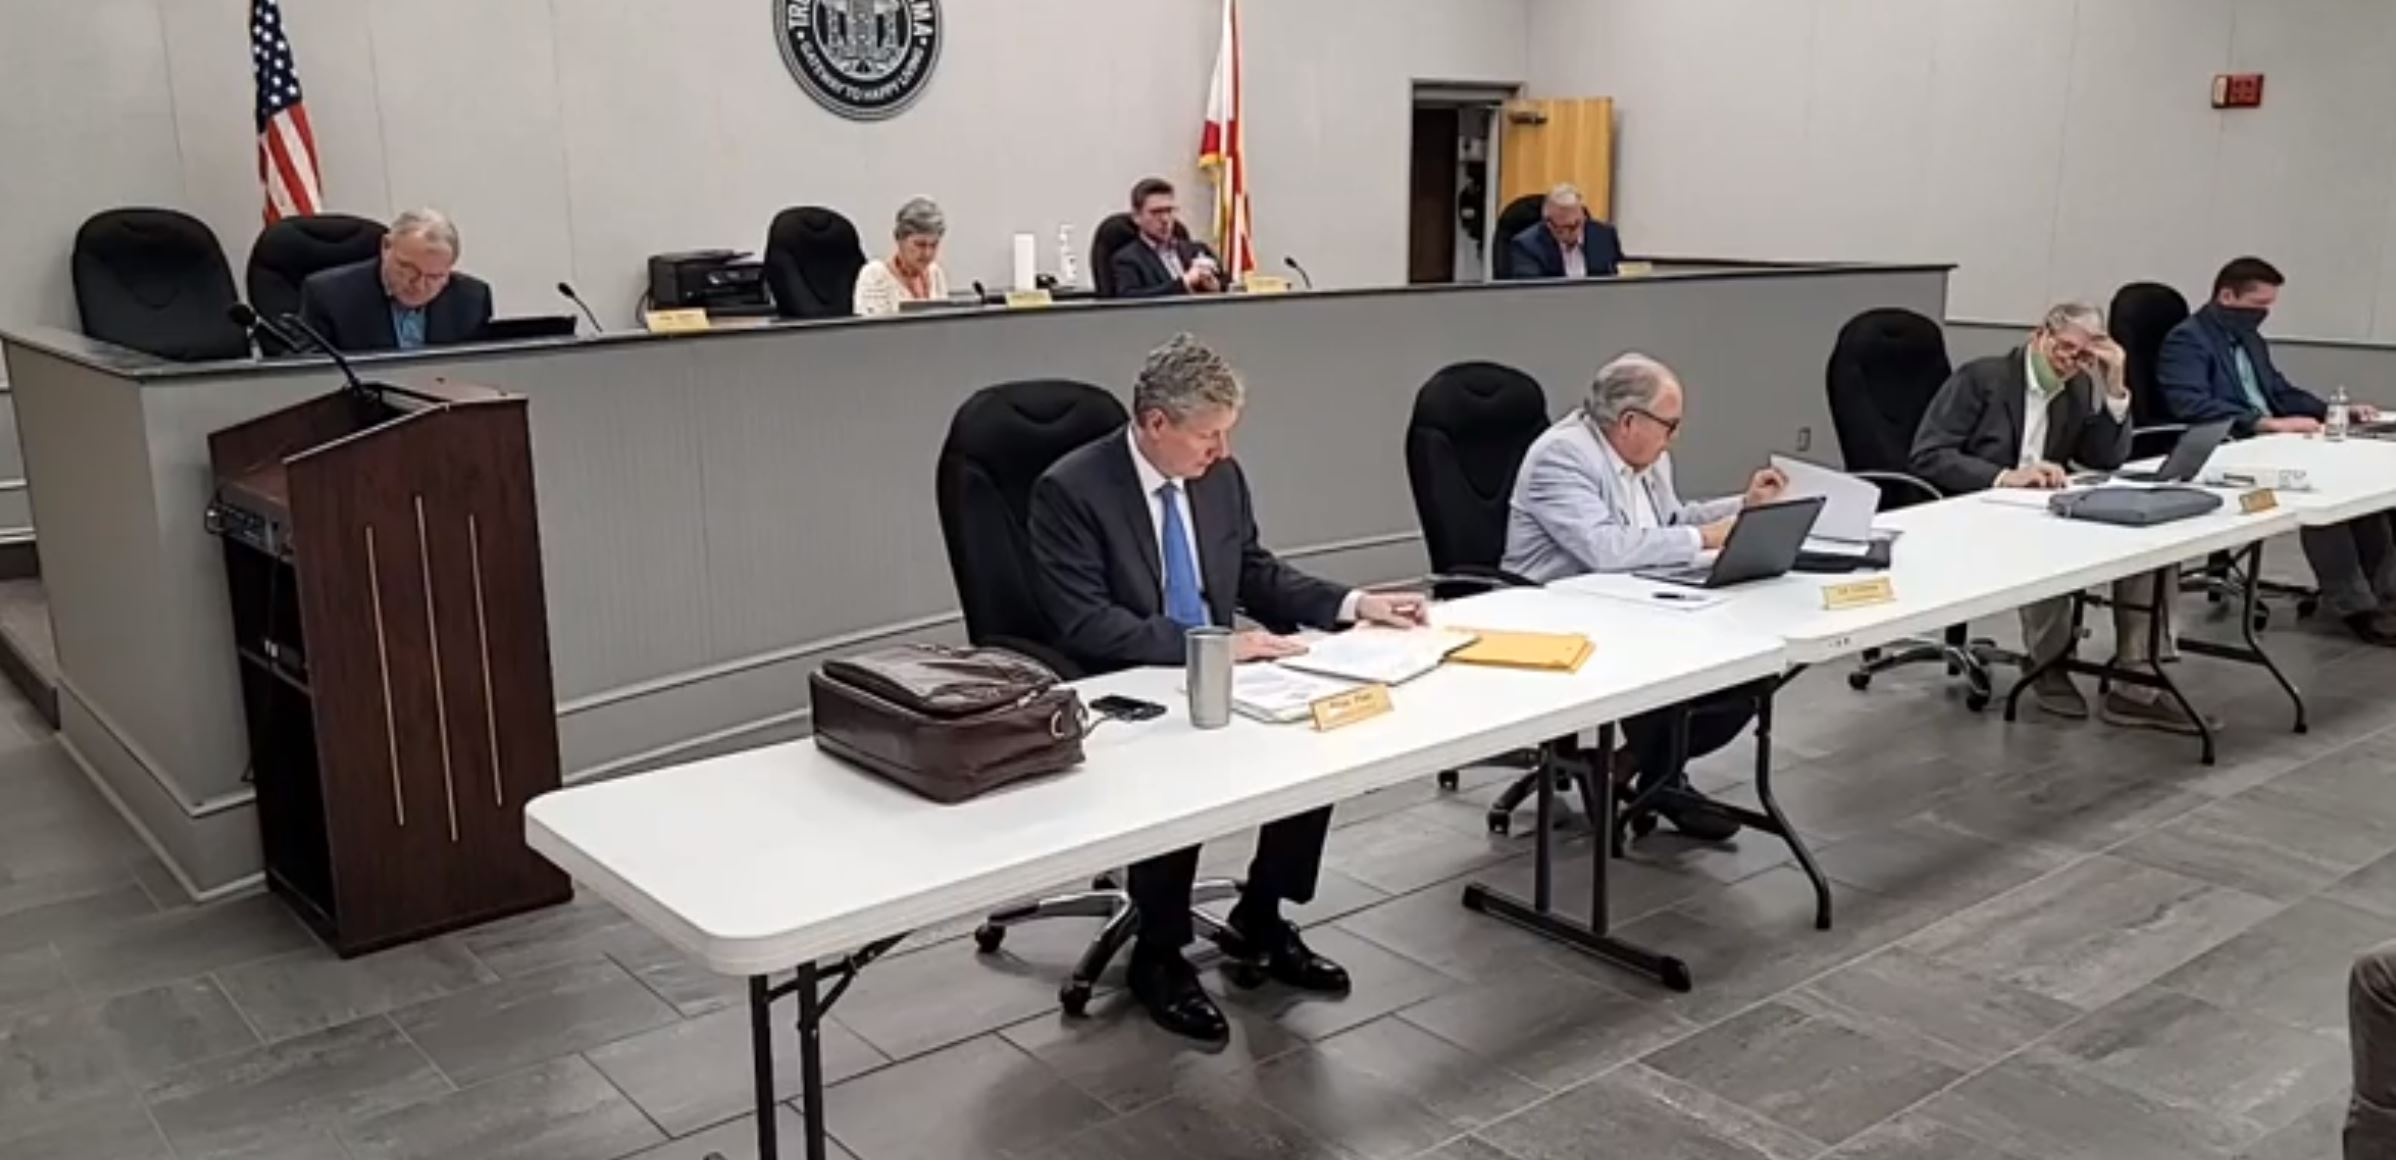 Trussville City Council discusses facility use agreement with Trussville City Schools